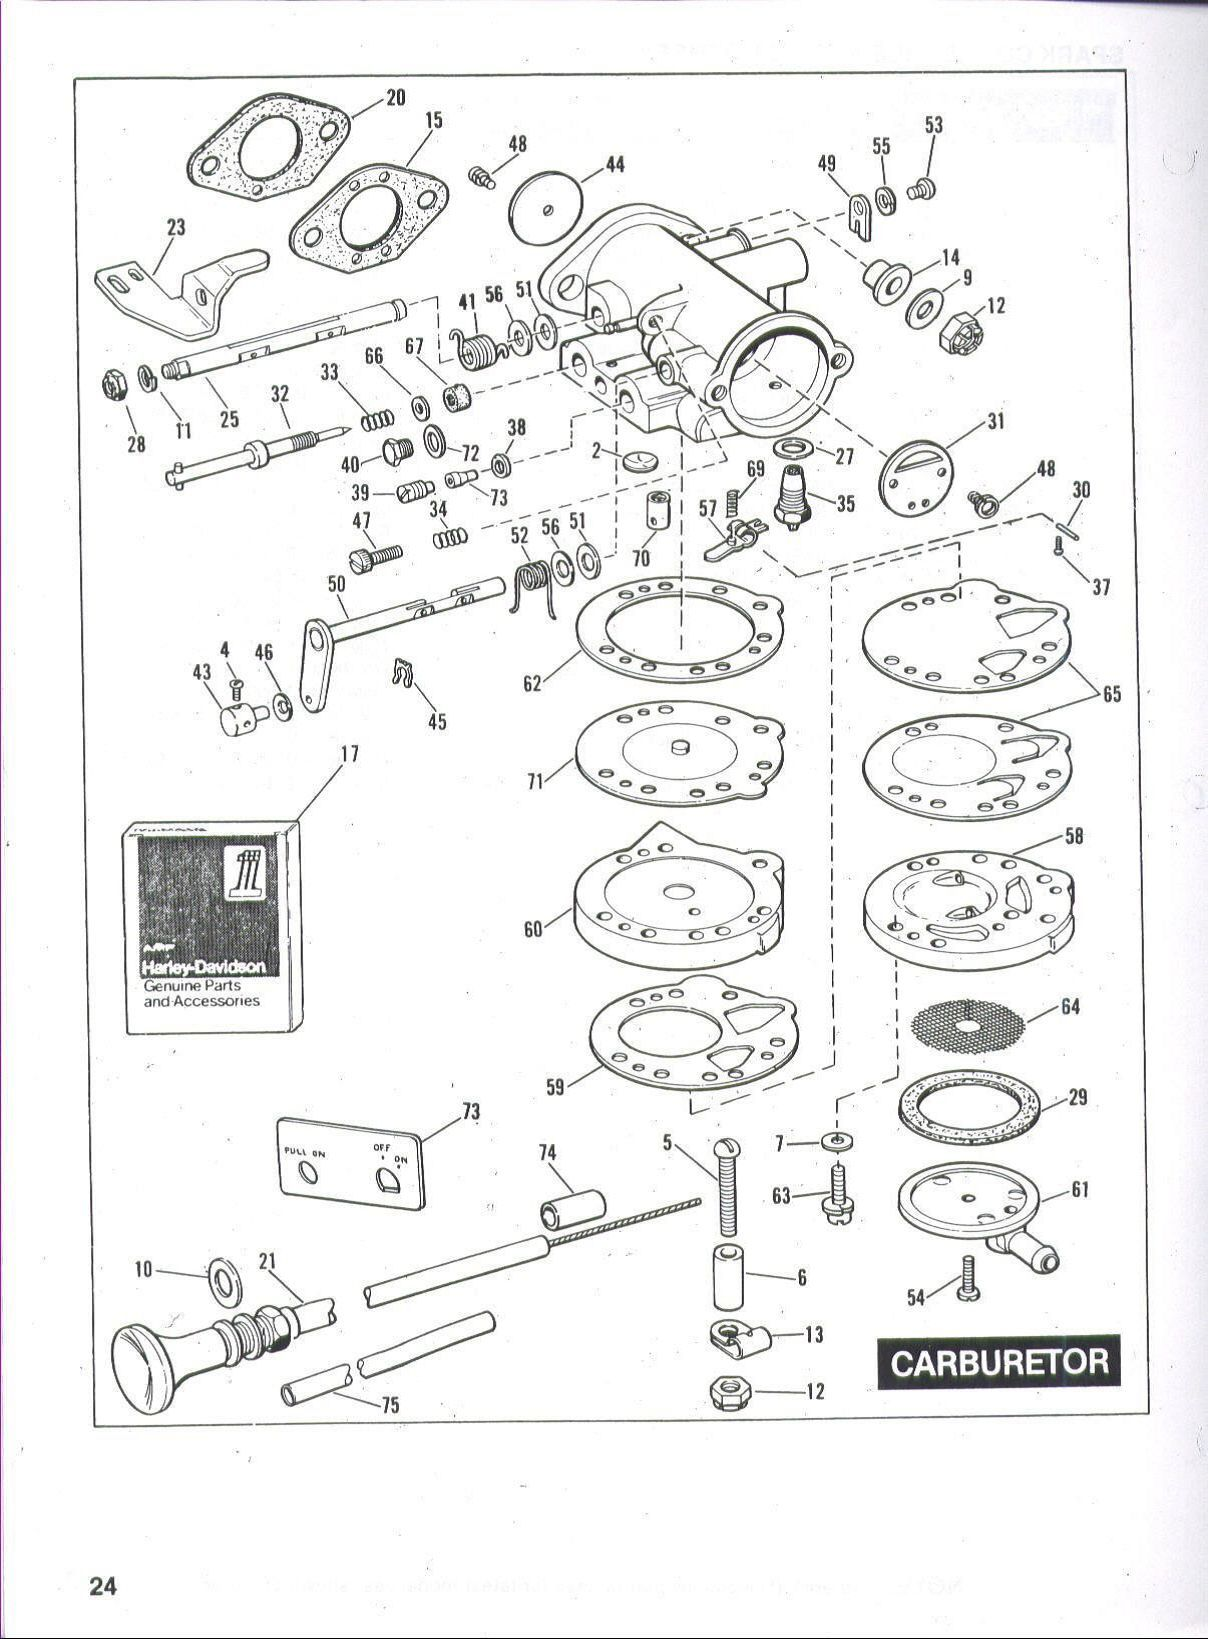 Yamaha Golf Cart Fuel Pump Diagram